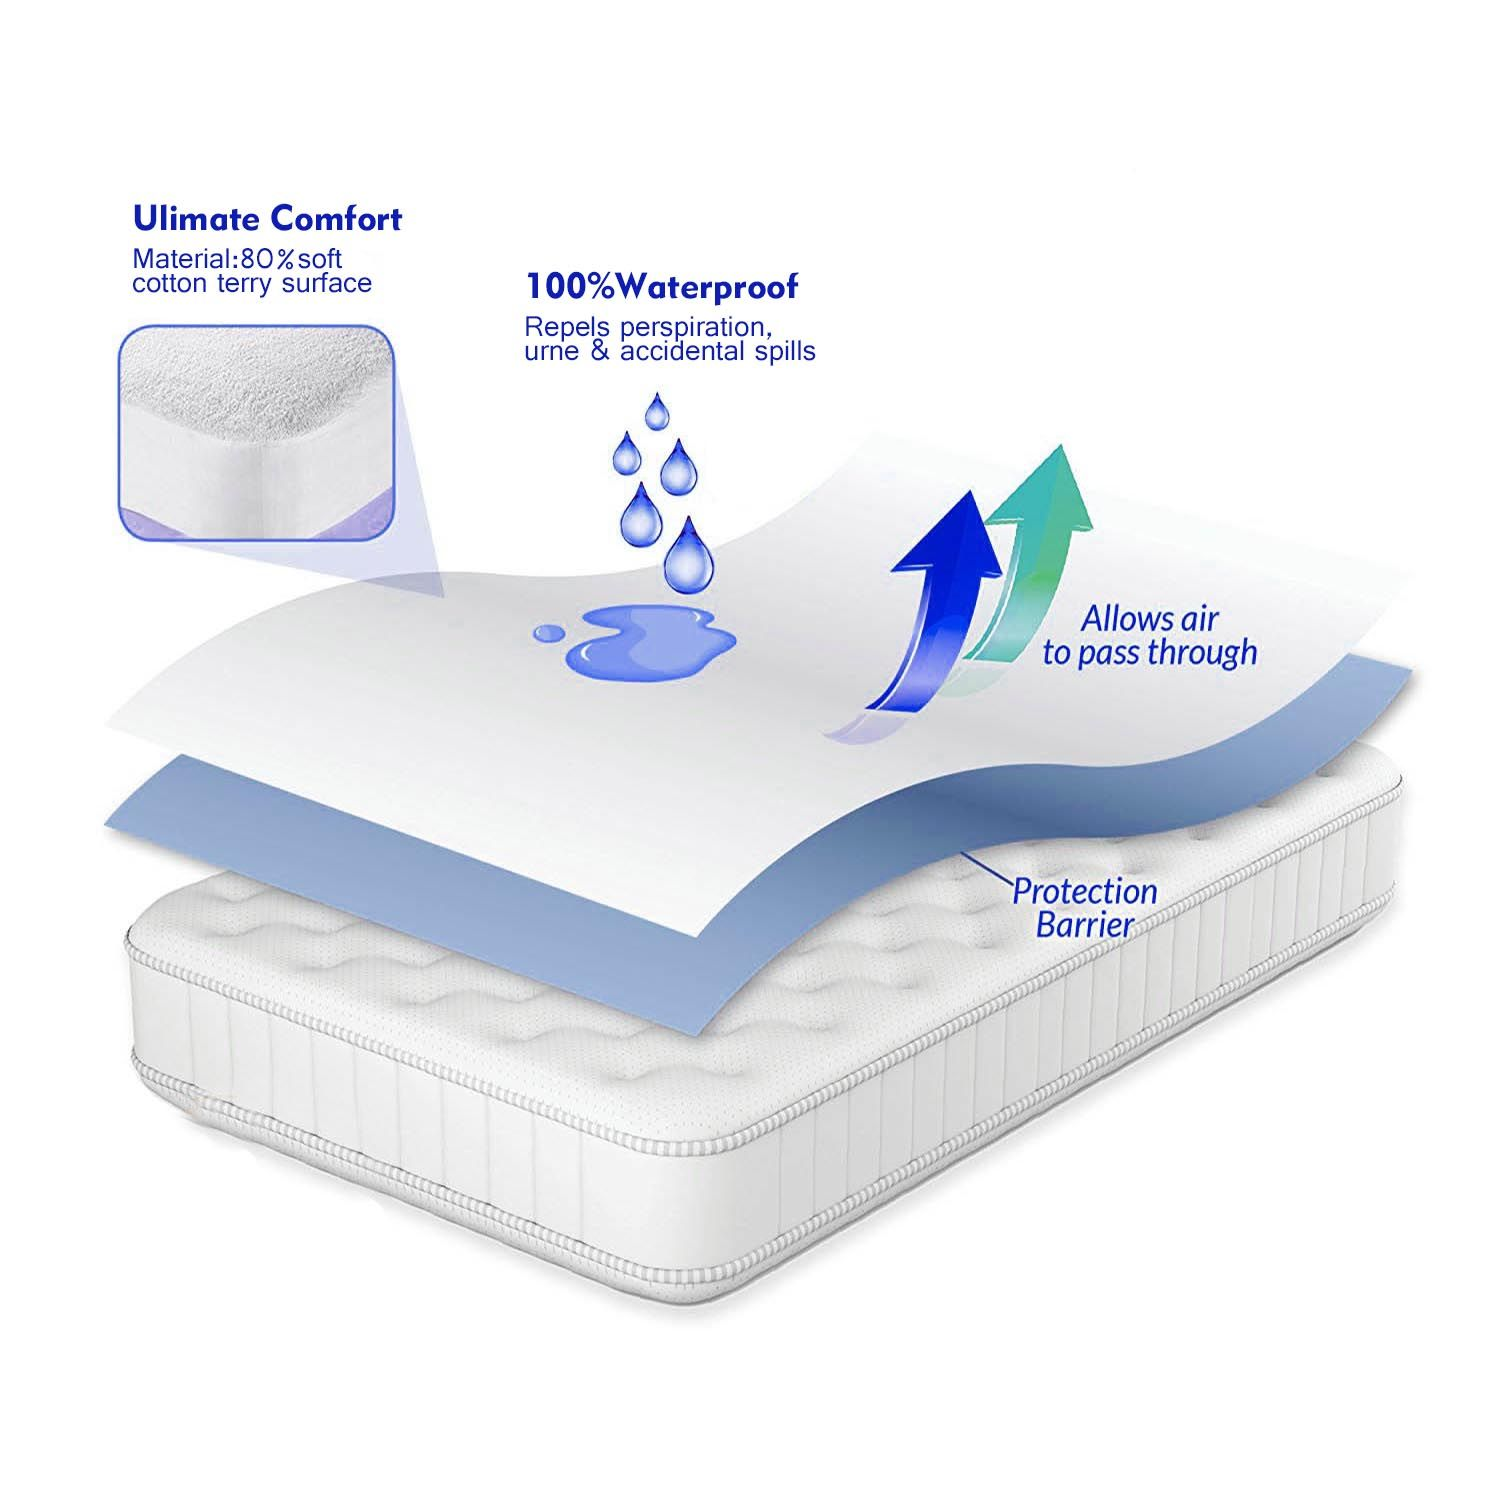 Mattress Cover All Natural Organic Eucalyptus Fiber Top Hypoallergenic Breathable Thin Quiet Smooth No Vinyl Mattress Covers Mattress Protector Mattress